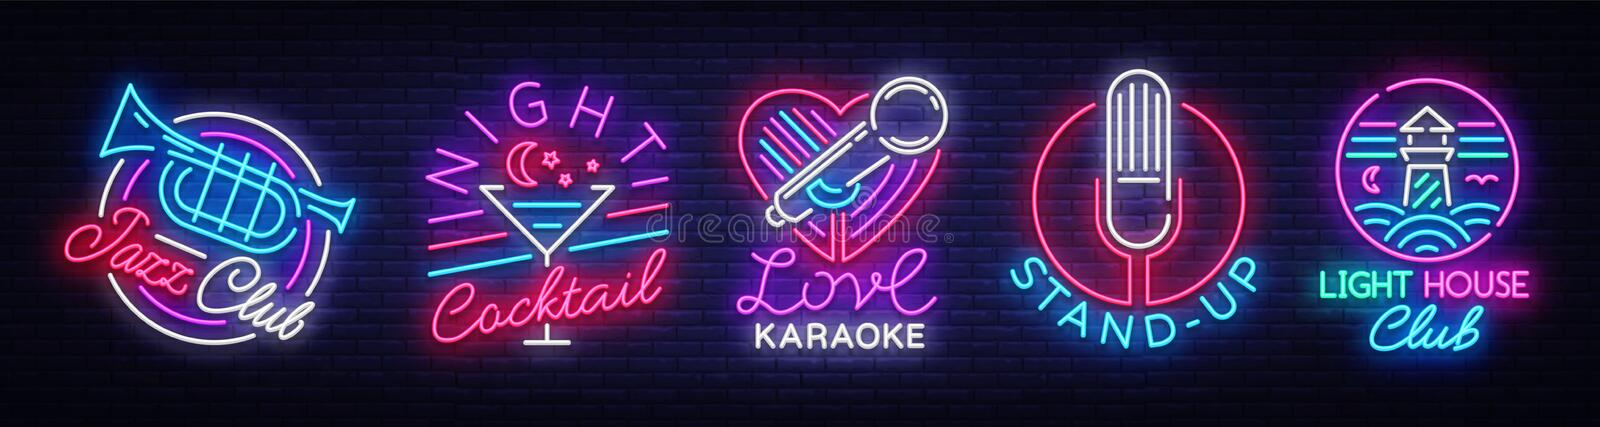 Logo collection in neon style. Neon Signs Collection Jazz Club, Night Cocktail, Karaoke, Stand Up, Lighthouse Night Club vector illustration